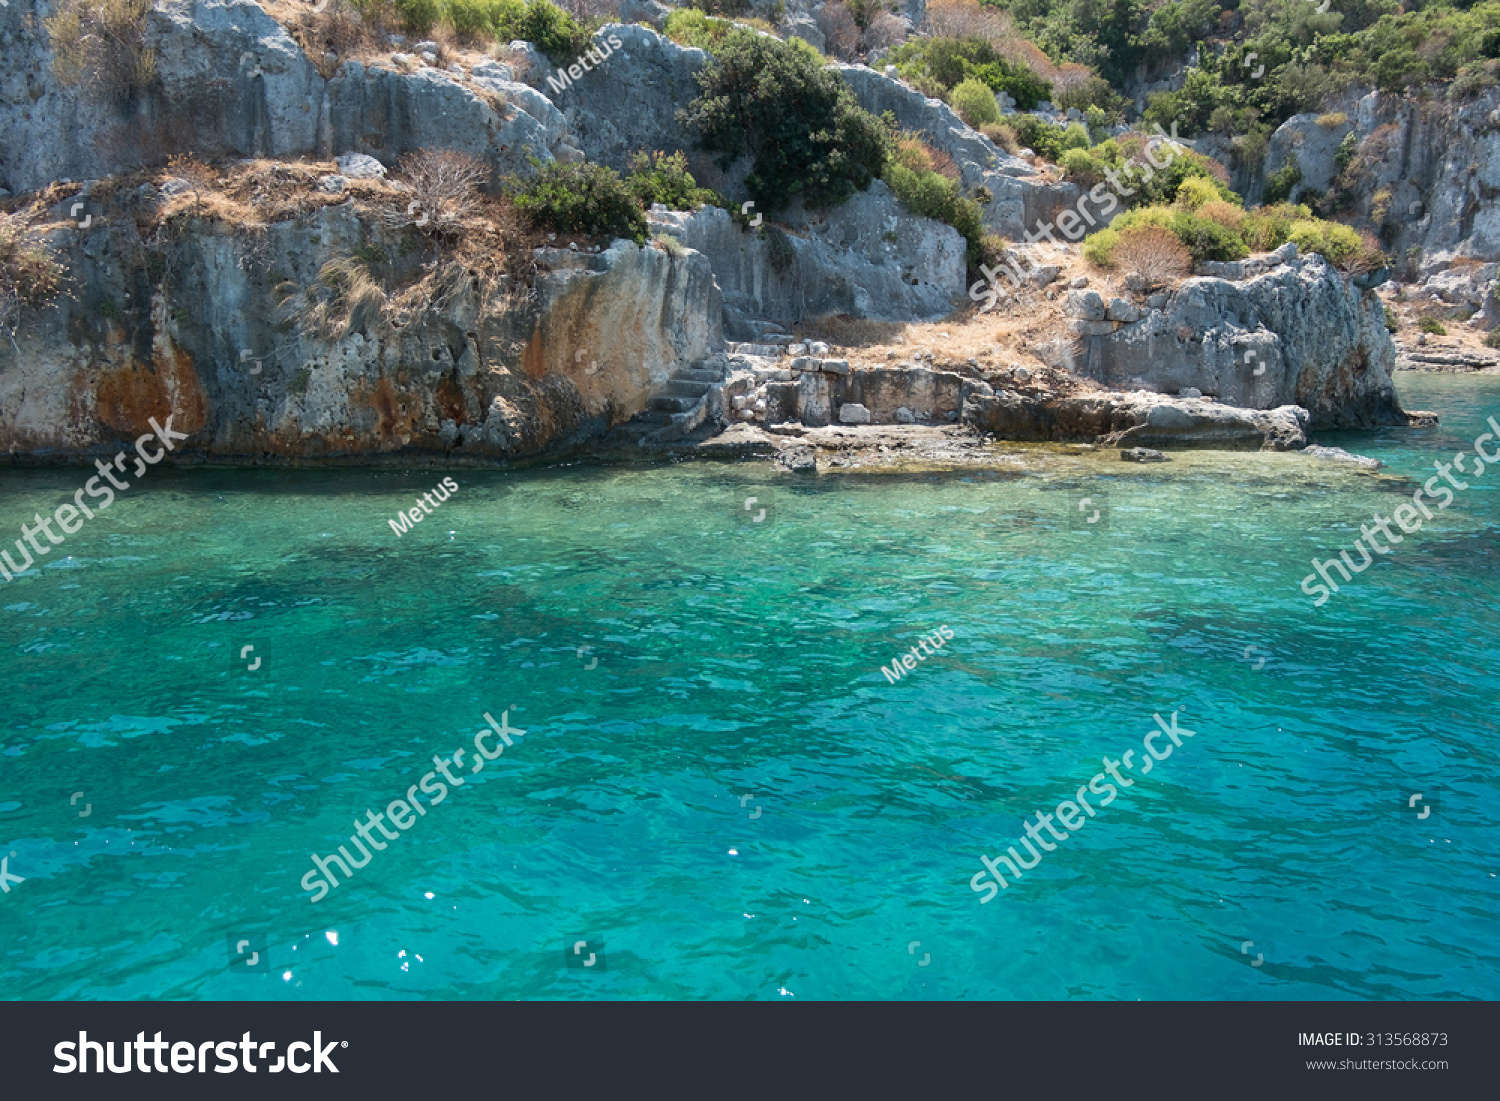 Sea and coast of island. Sea harbor with blue-green water and coast rocks. Beautiful seascape. Composition of nature. A lot of space for text. Tropical island.